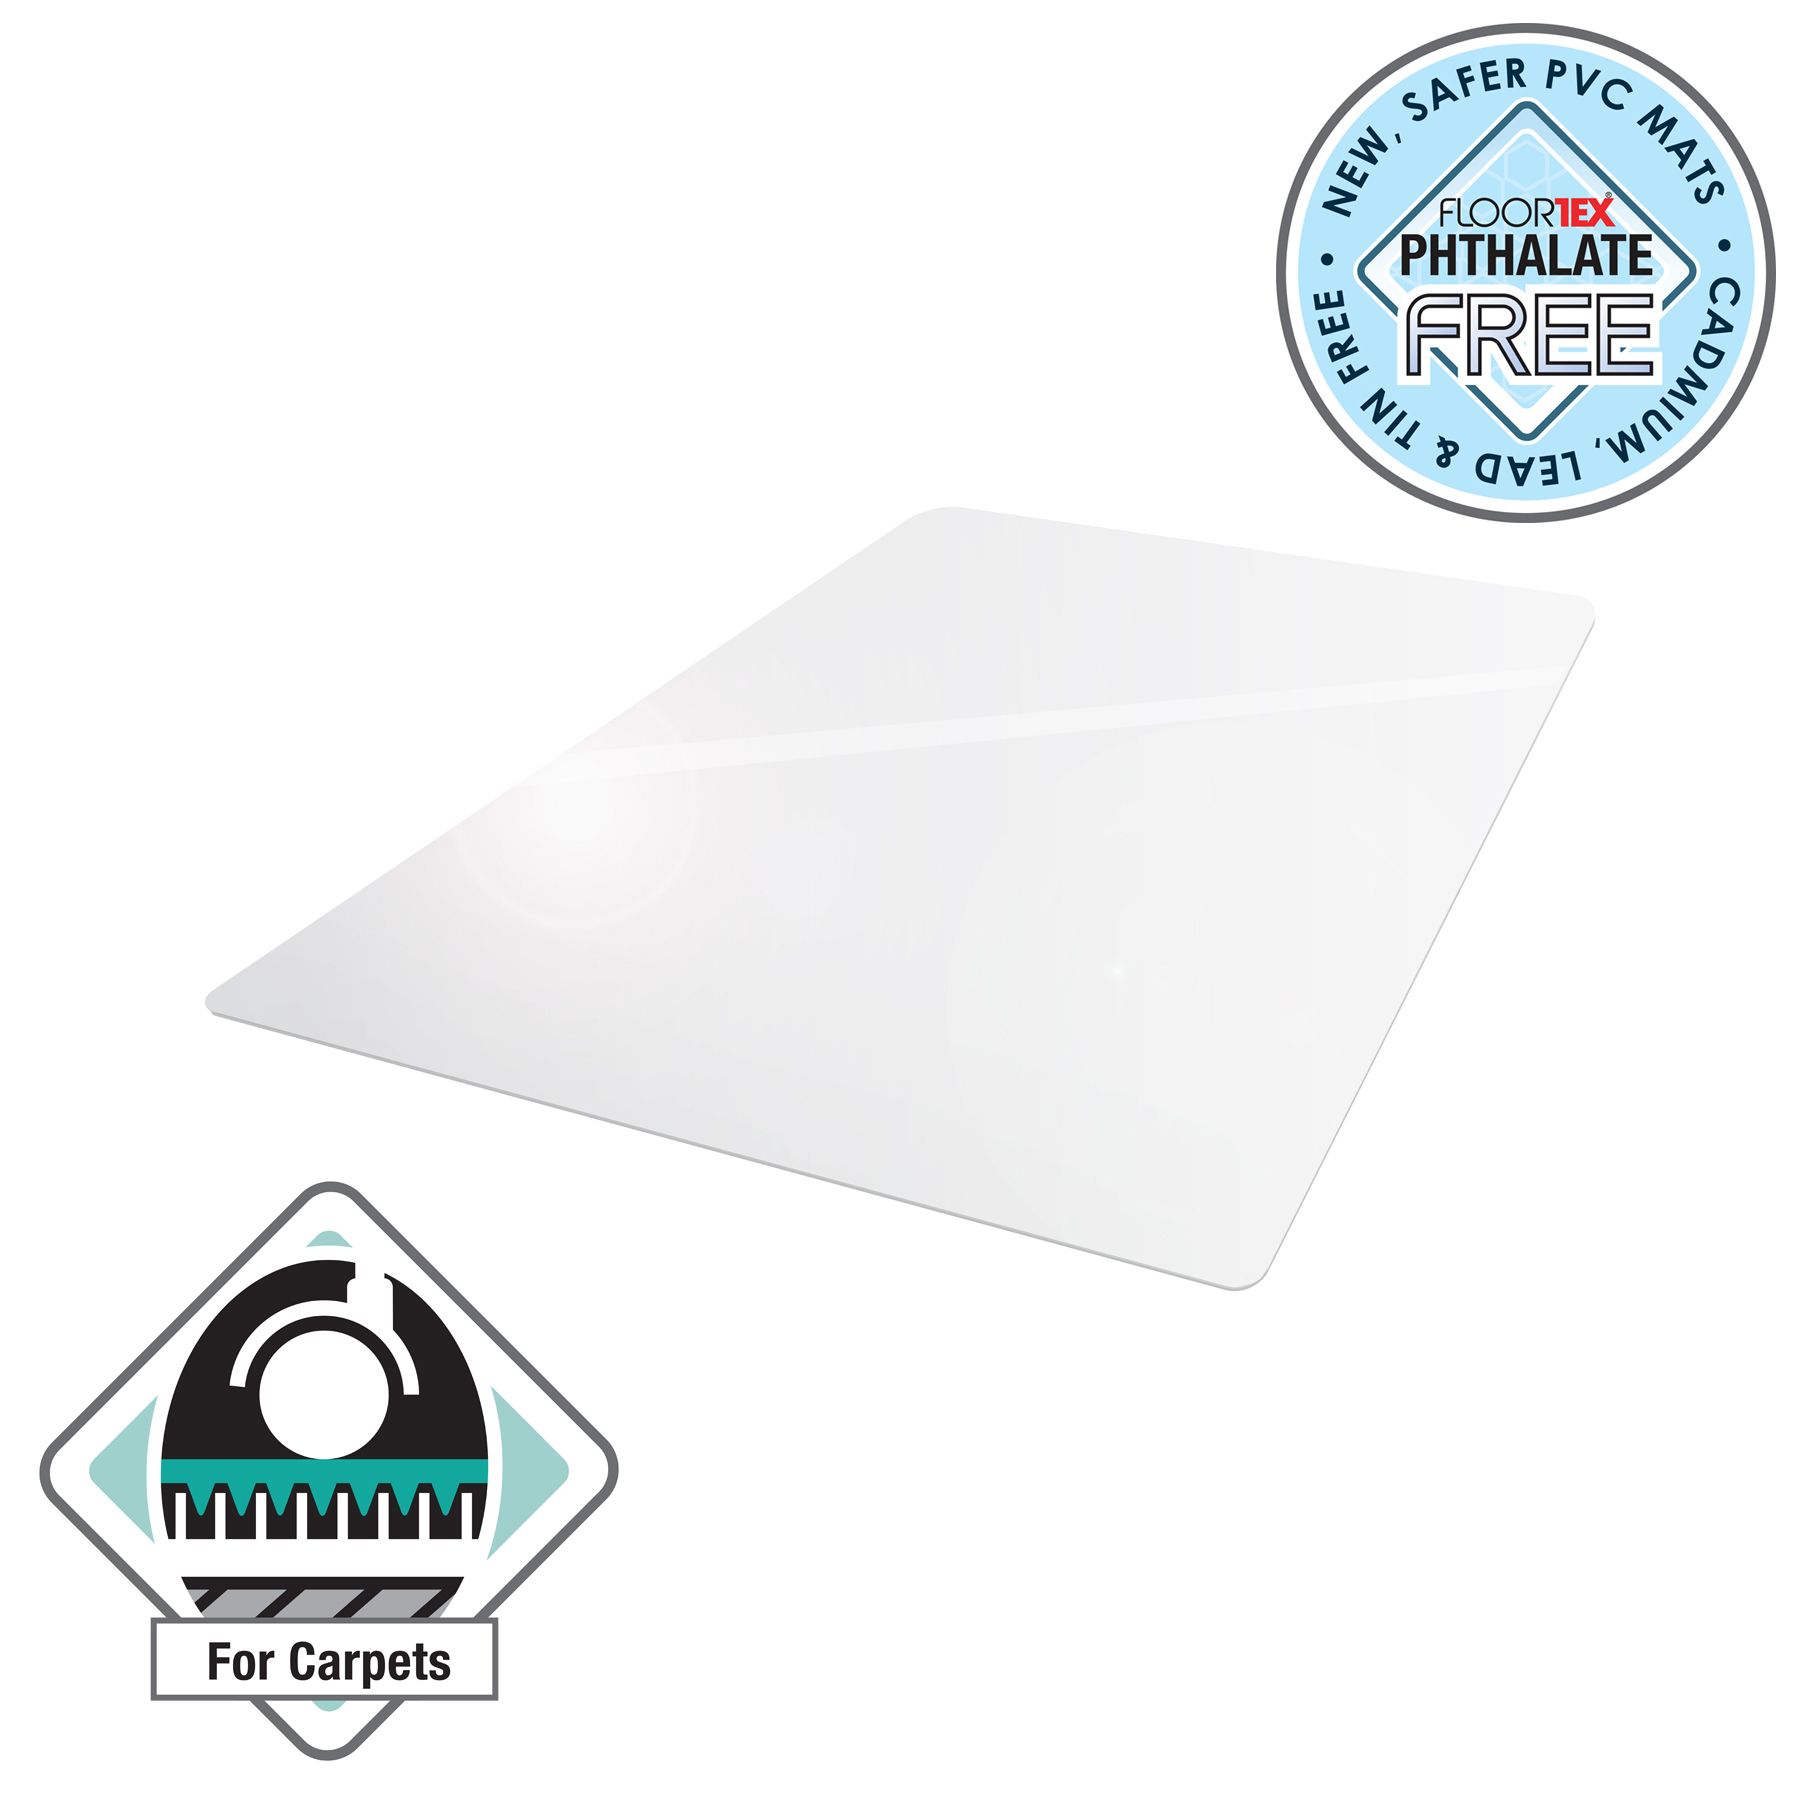 Chair mat Cleartex Advantagemat Chair Mat For Carpets Rectangular 1200x1500mm Clear Ref FCVPF1115225EV